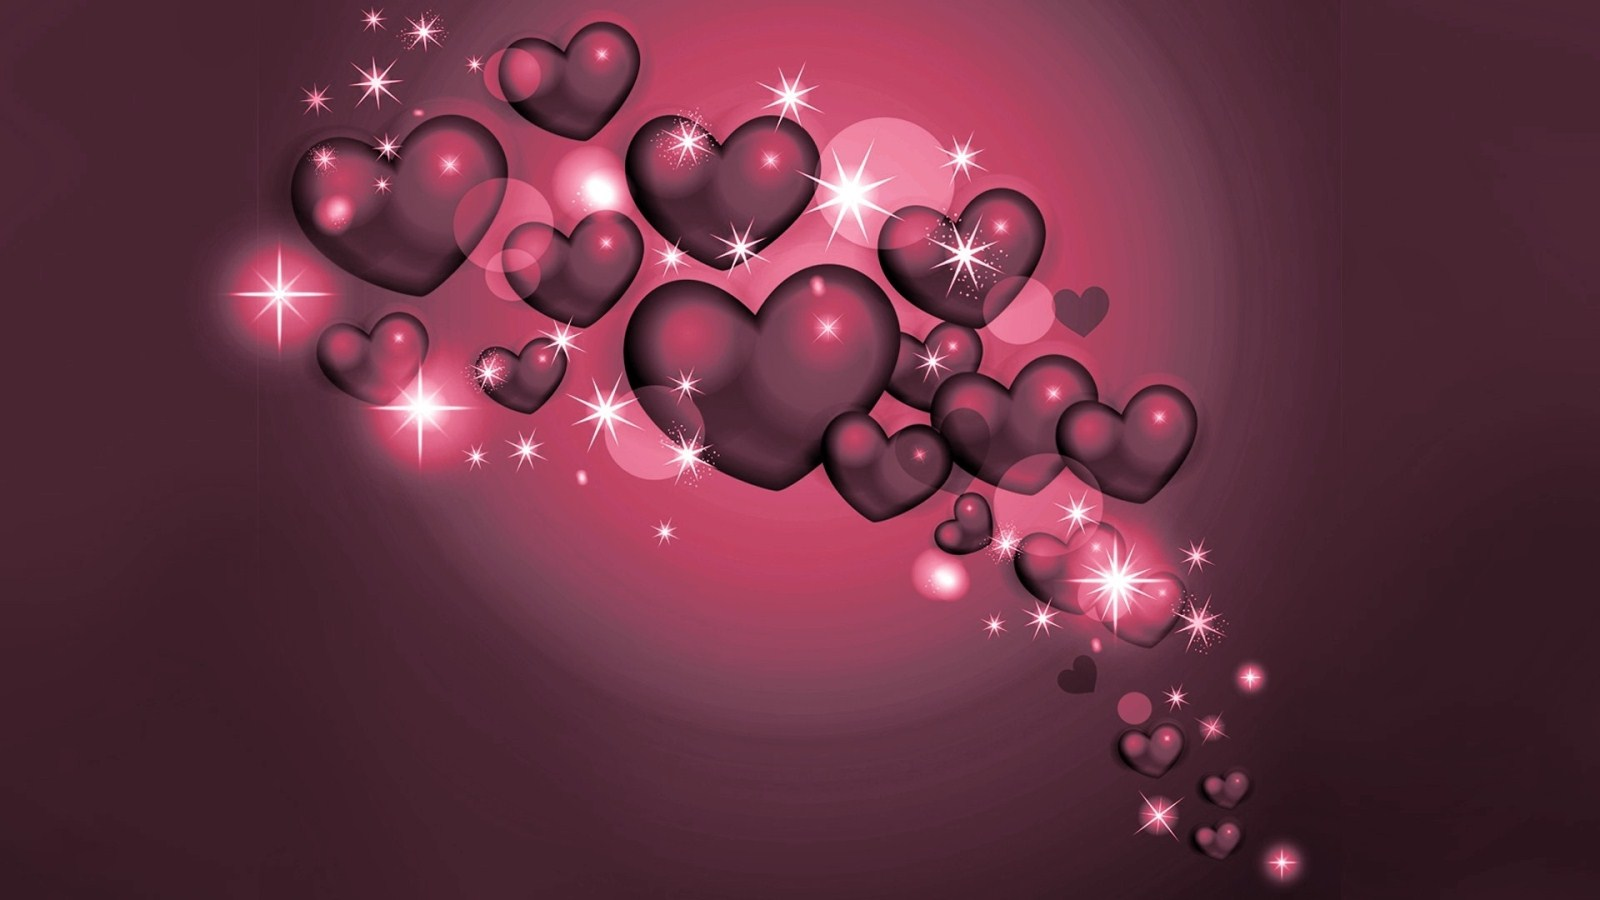 Love Images Hd And 3d : 3D Love Wallpaper - WallpaperSafari